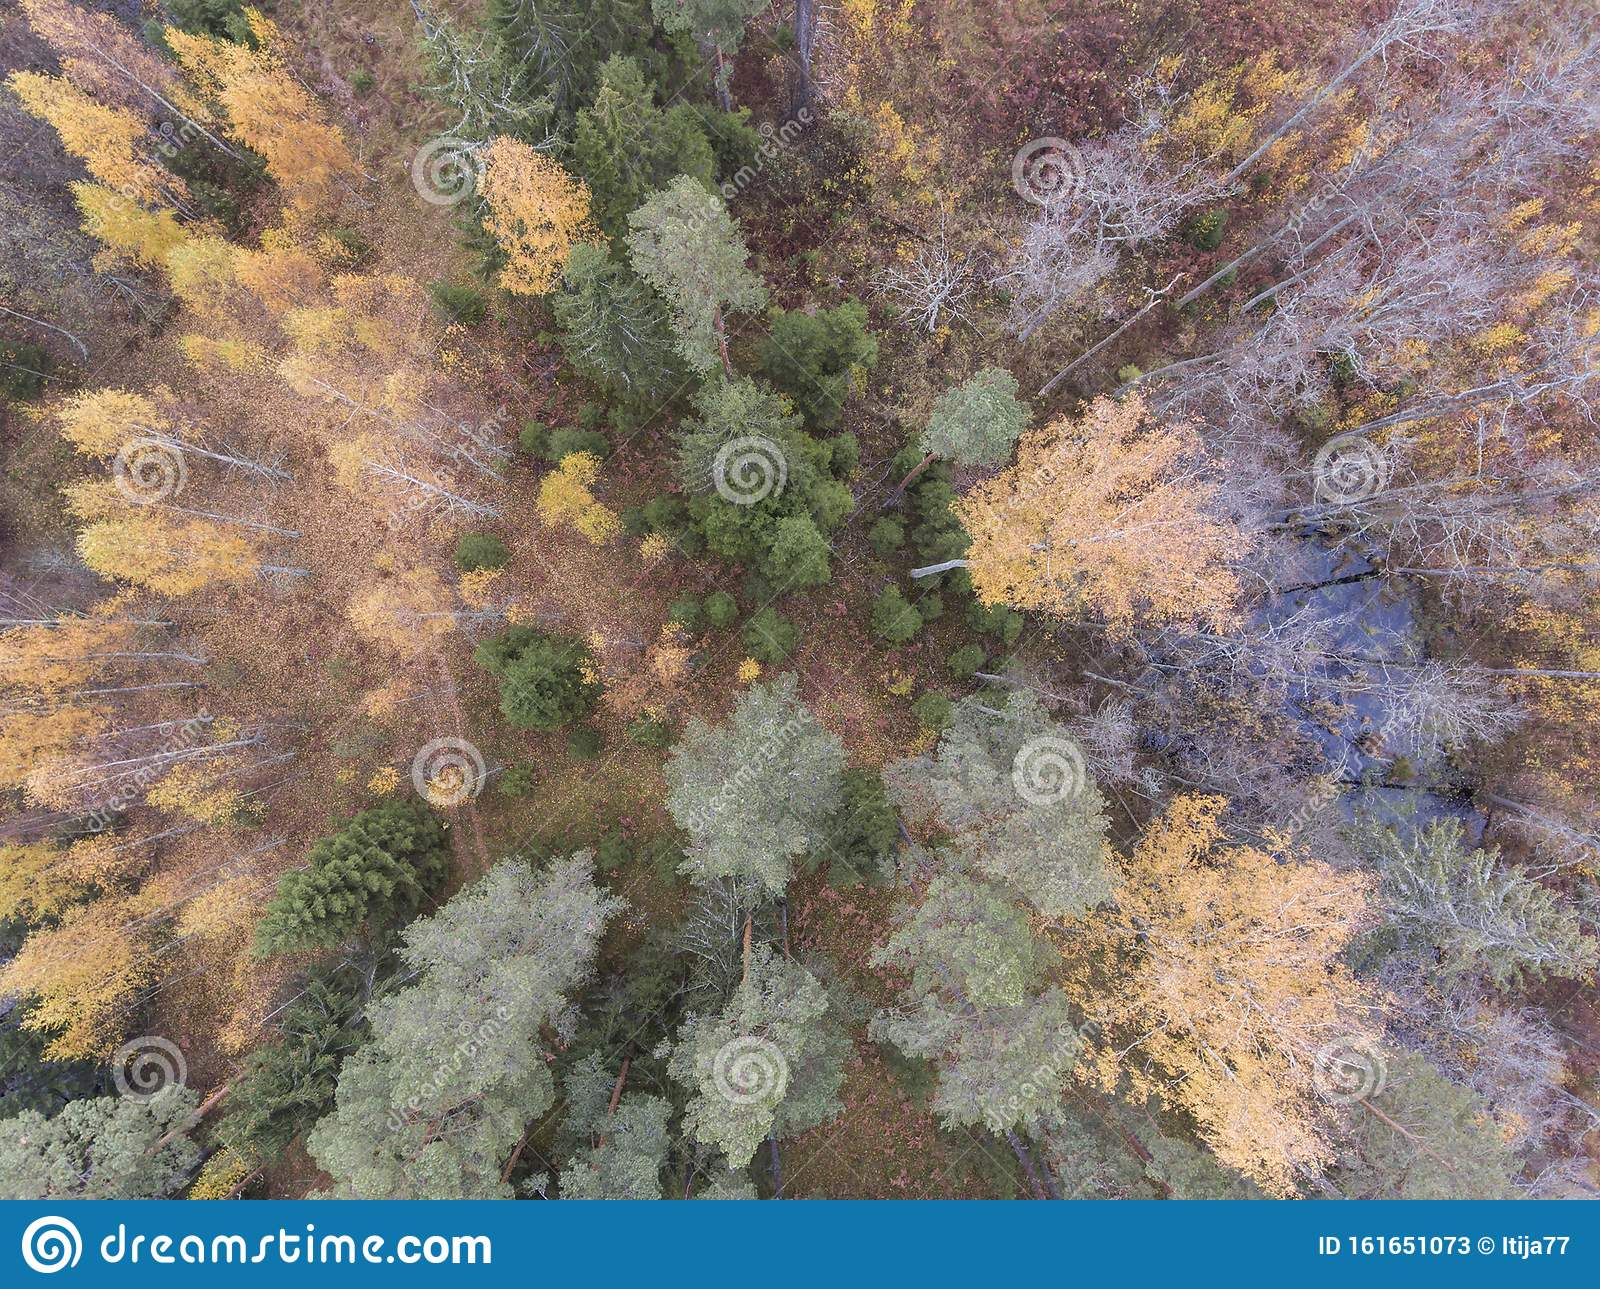 Amazing Autumn Mood Forest Top Down View From Drone For Desktop Wallpaper Stock Image Image Of Forest Drone 161651073